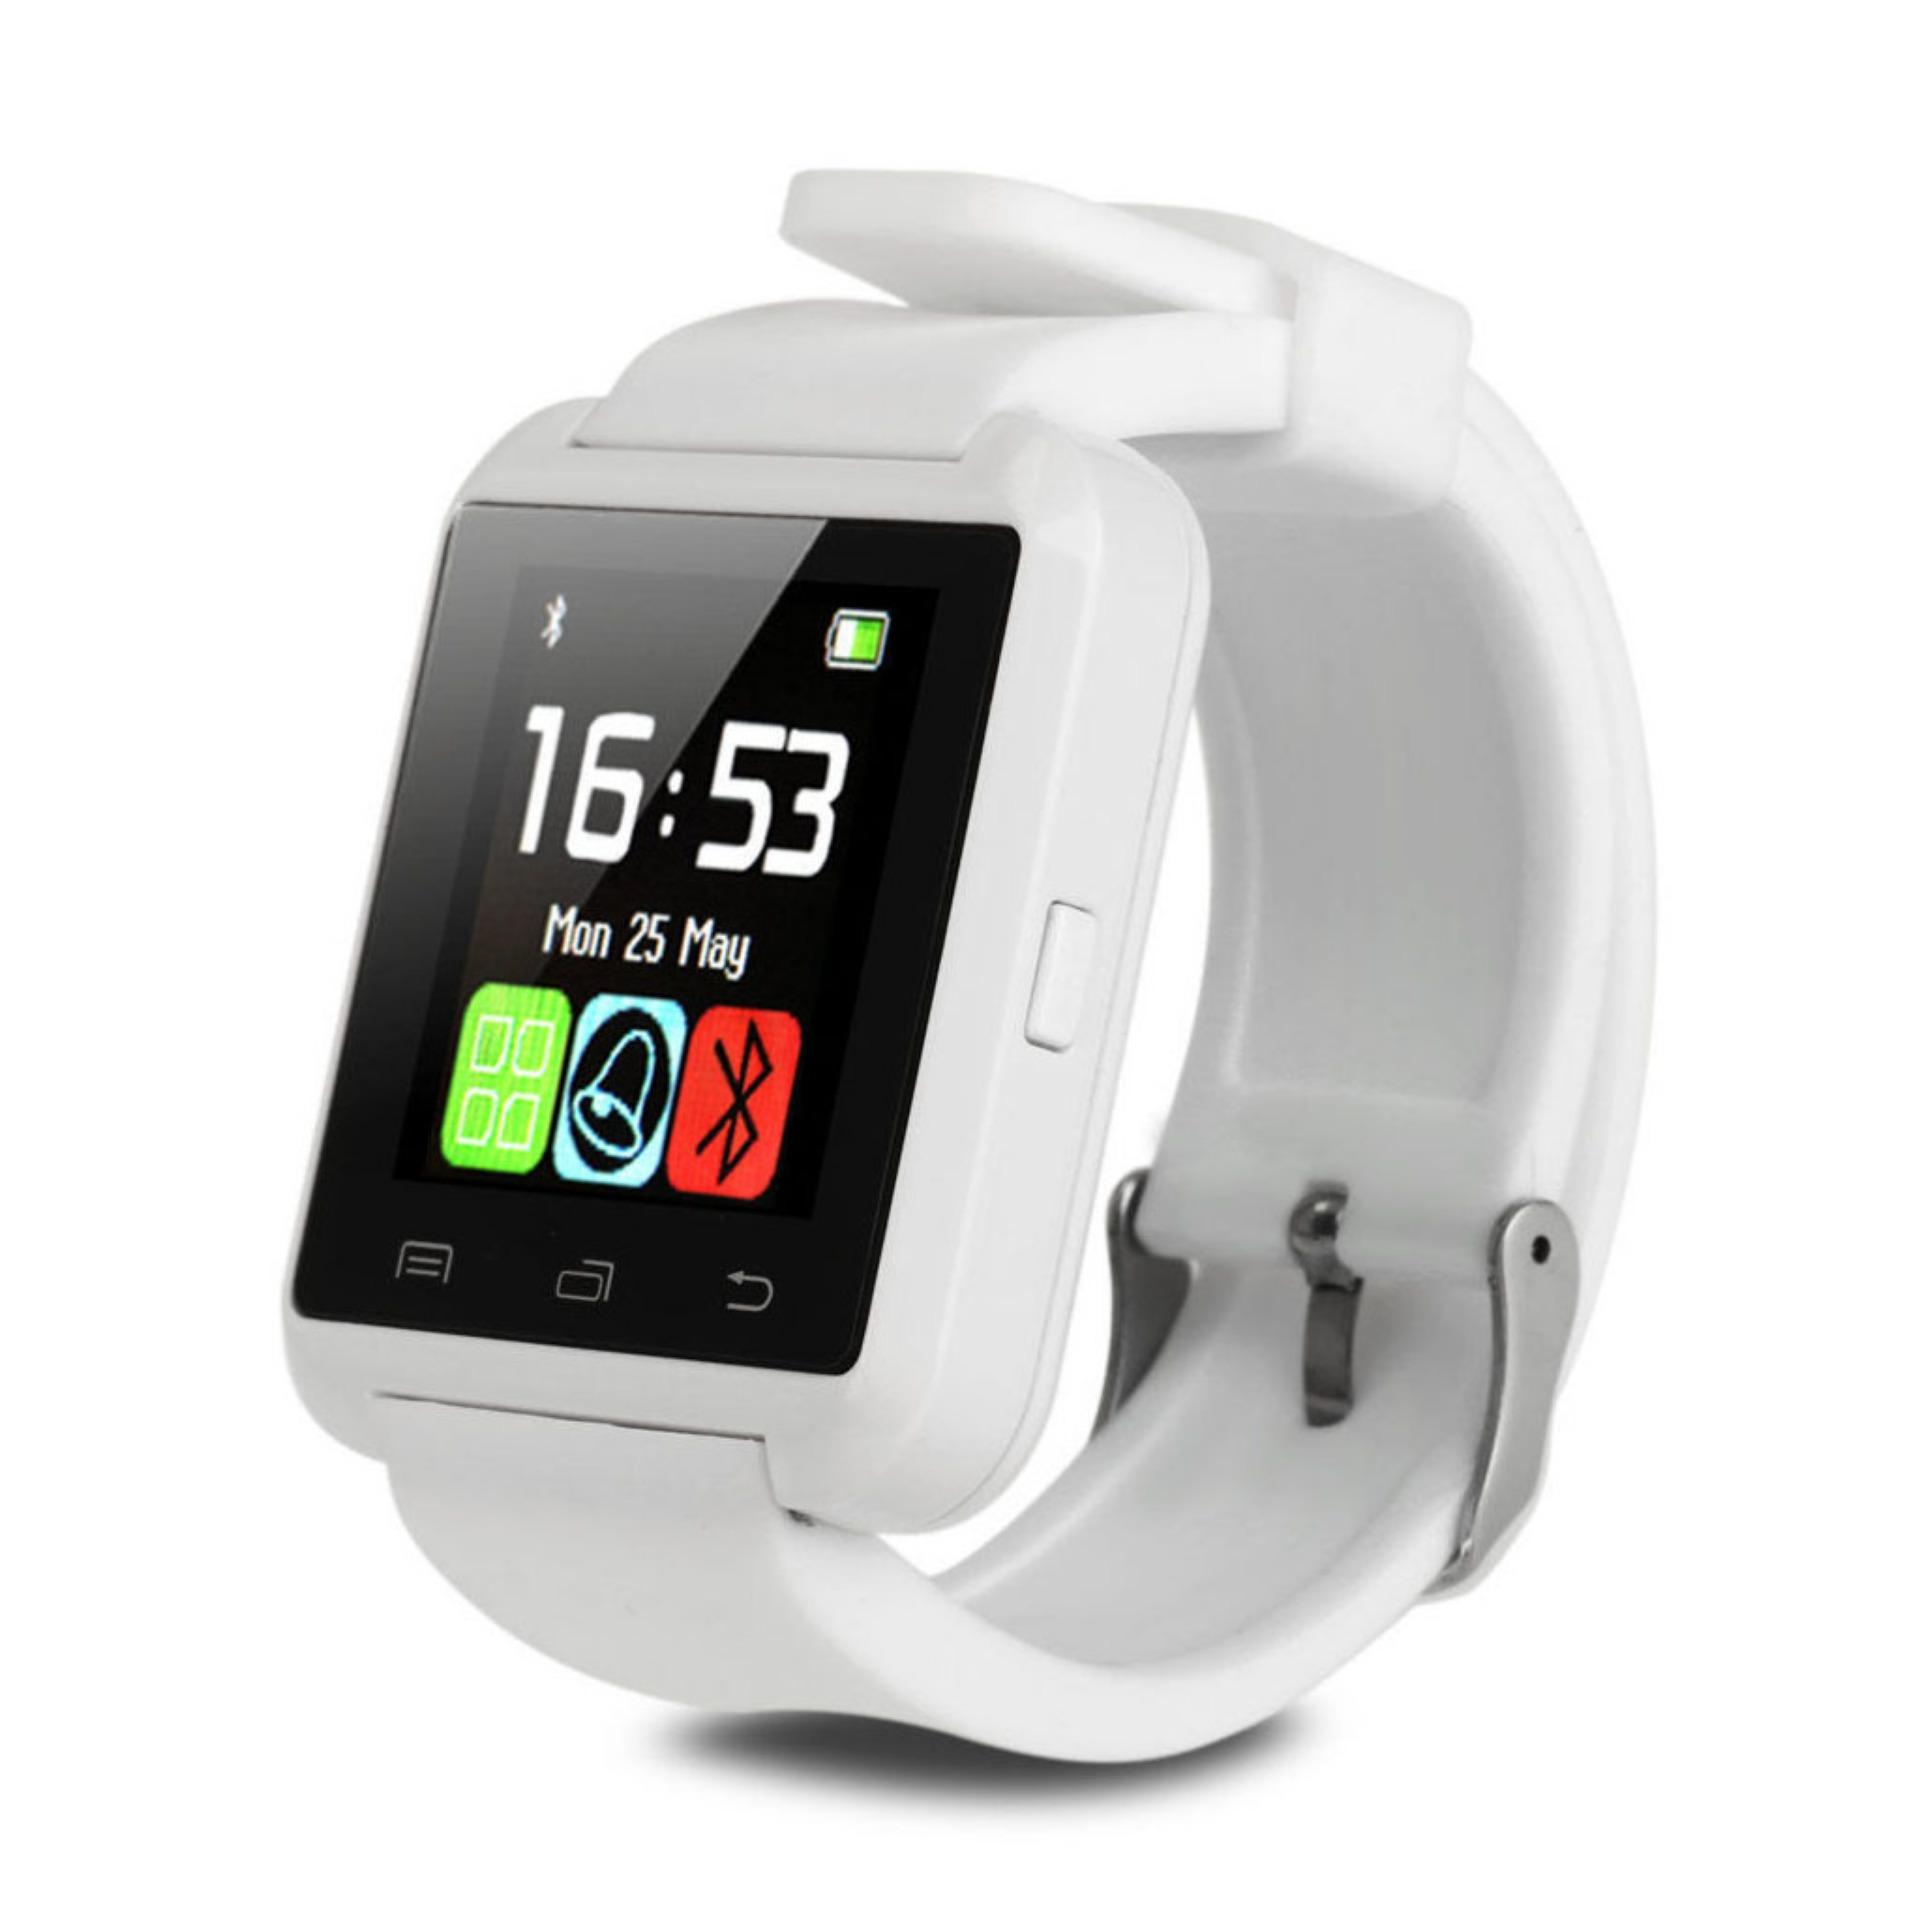 Bluetooth Smart Phone Mate Wrist Watch For Android IOS Samsung HTC SONY Huawei - intl